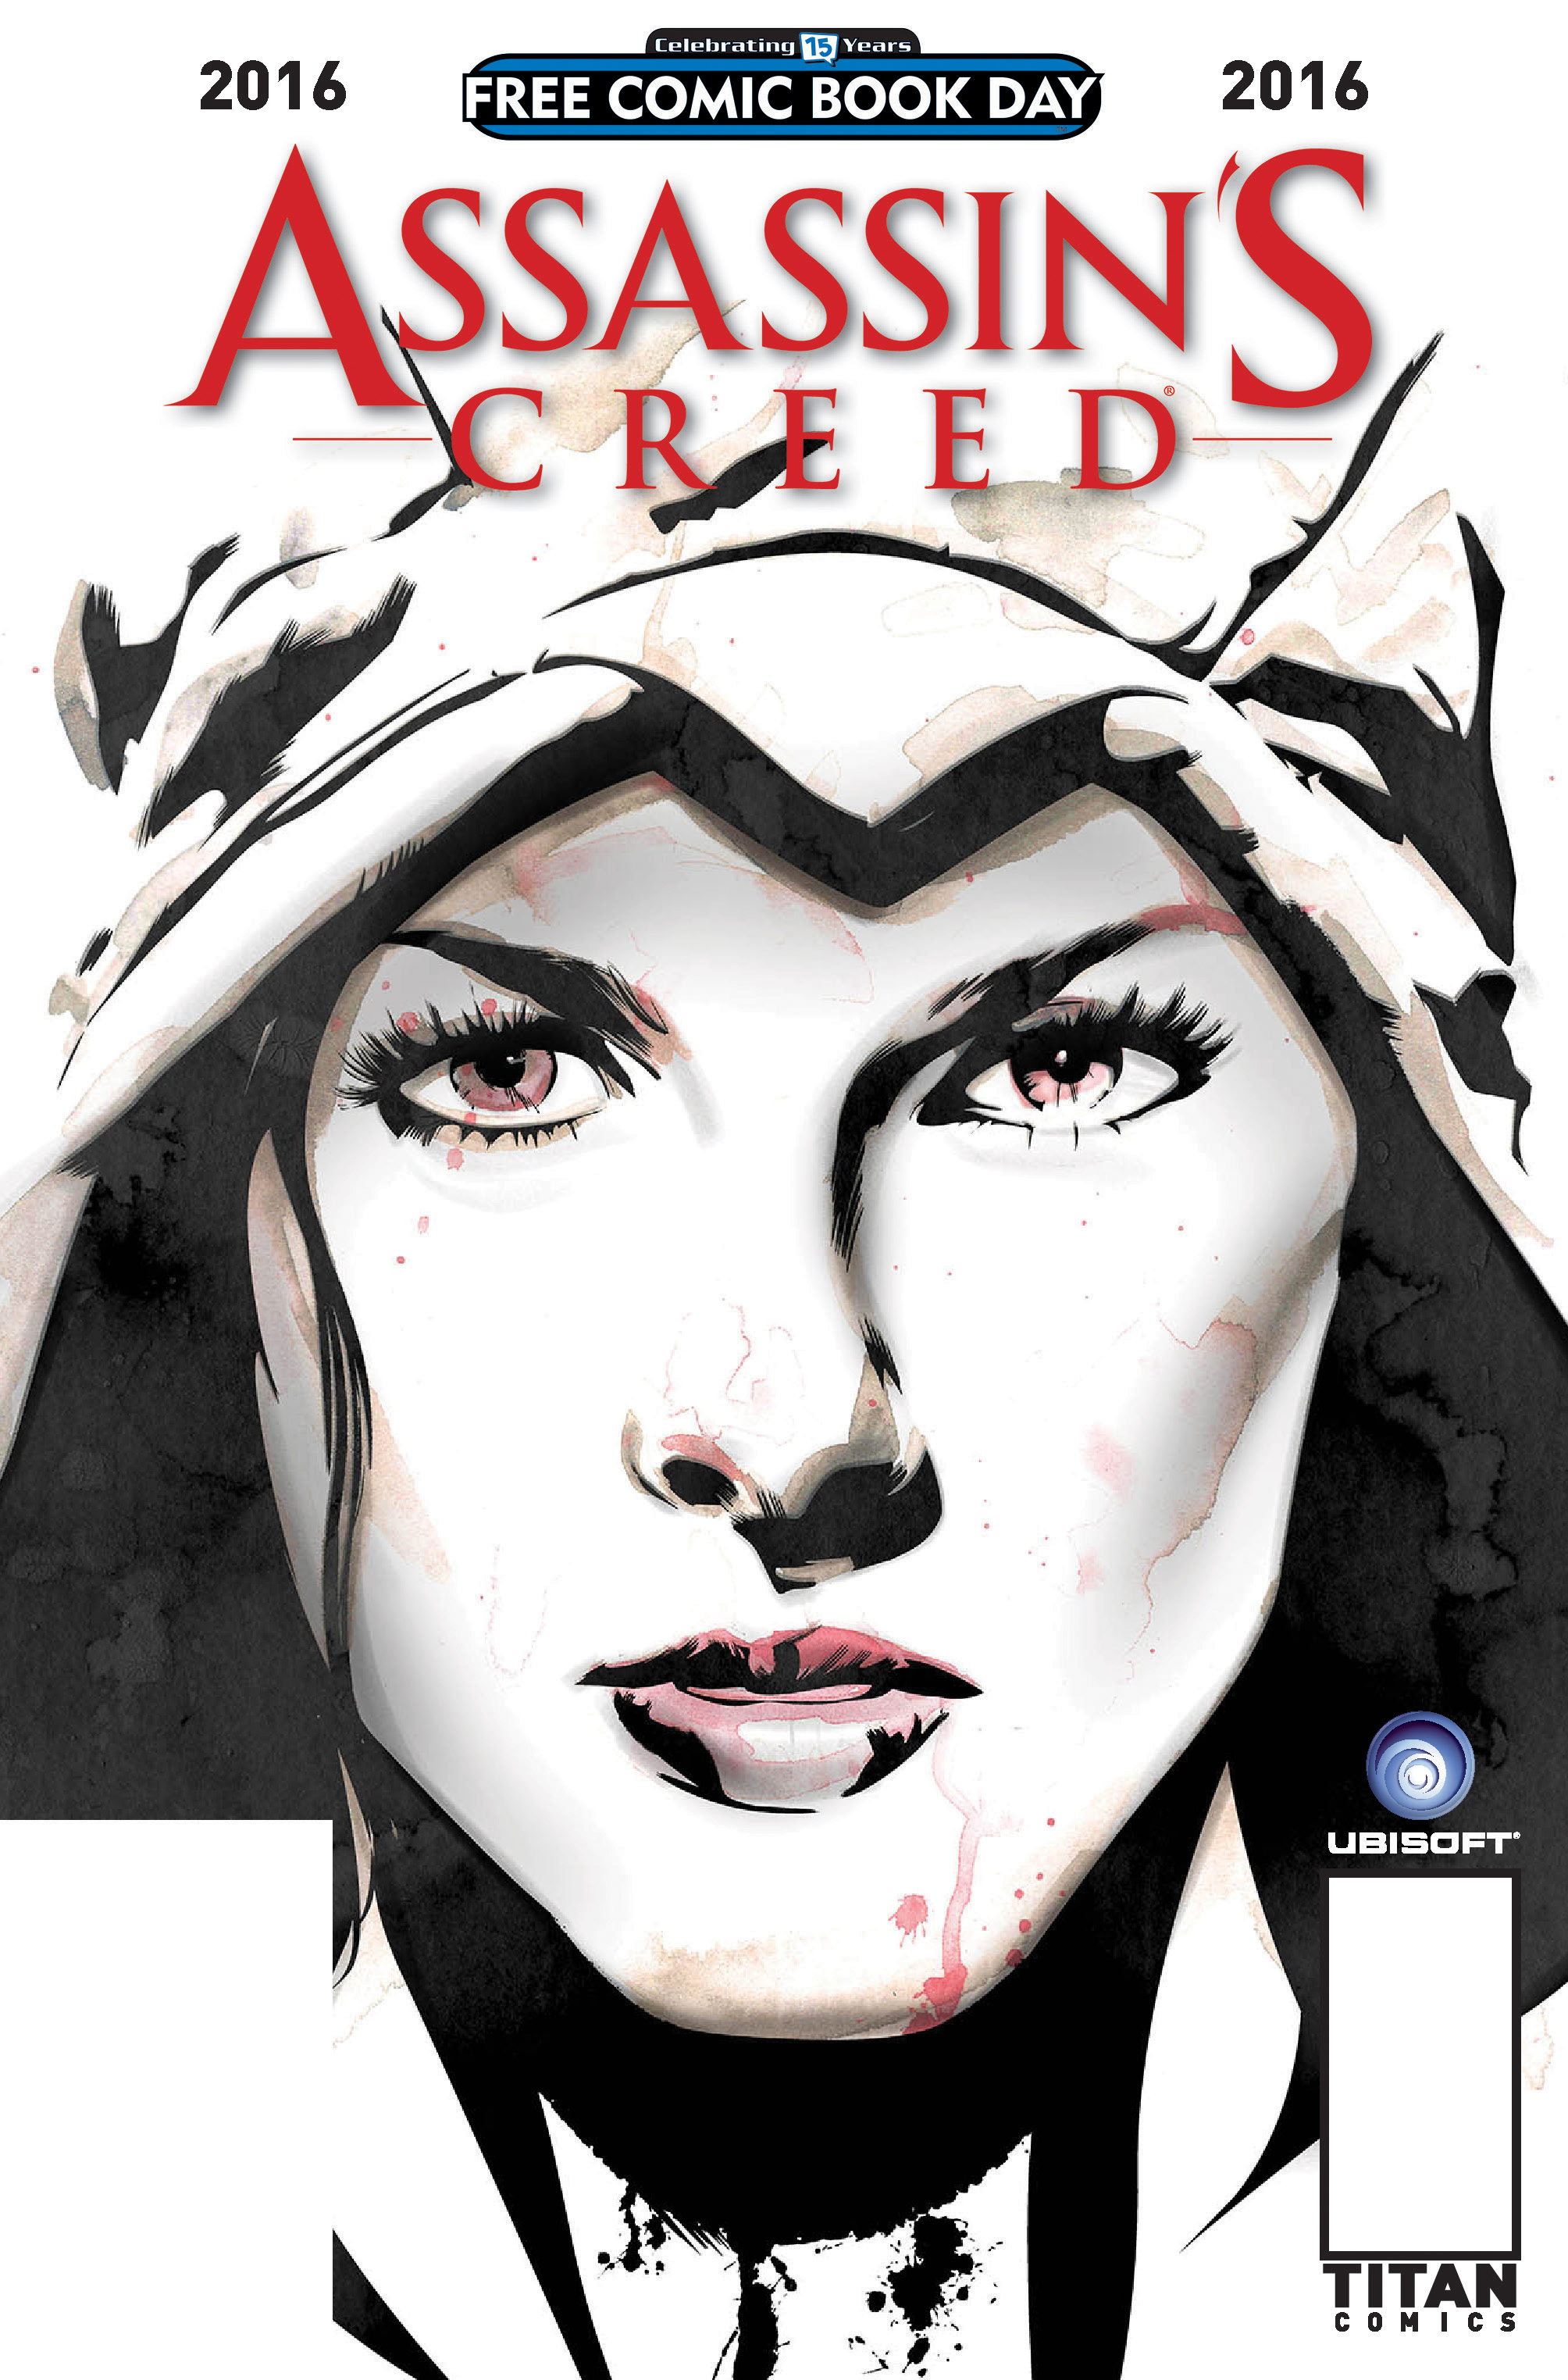 Assassin's Creed Free Comic Book Day 2016 Cover